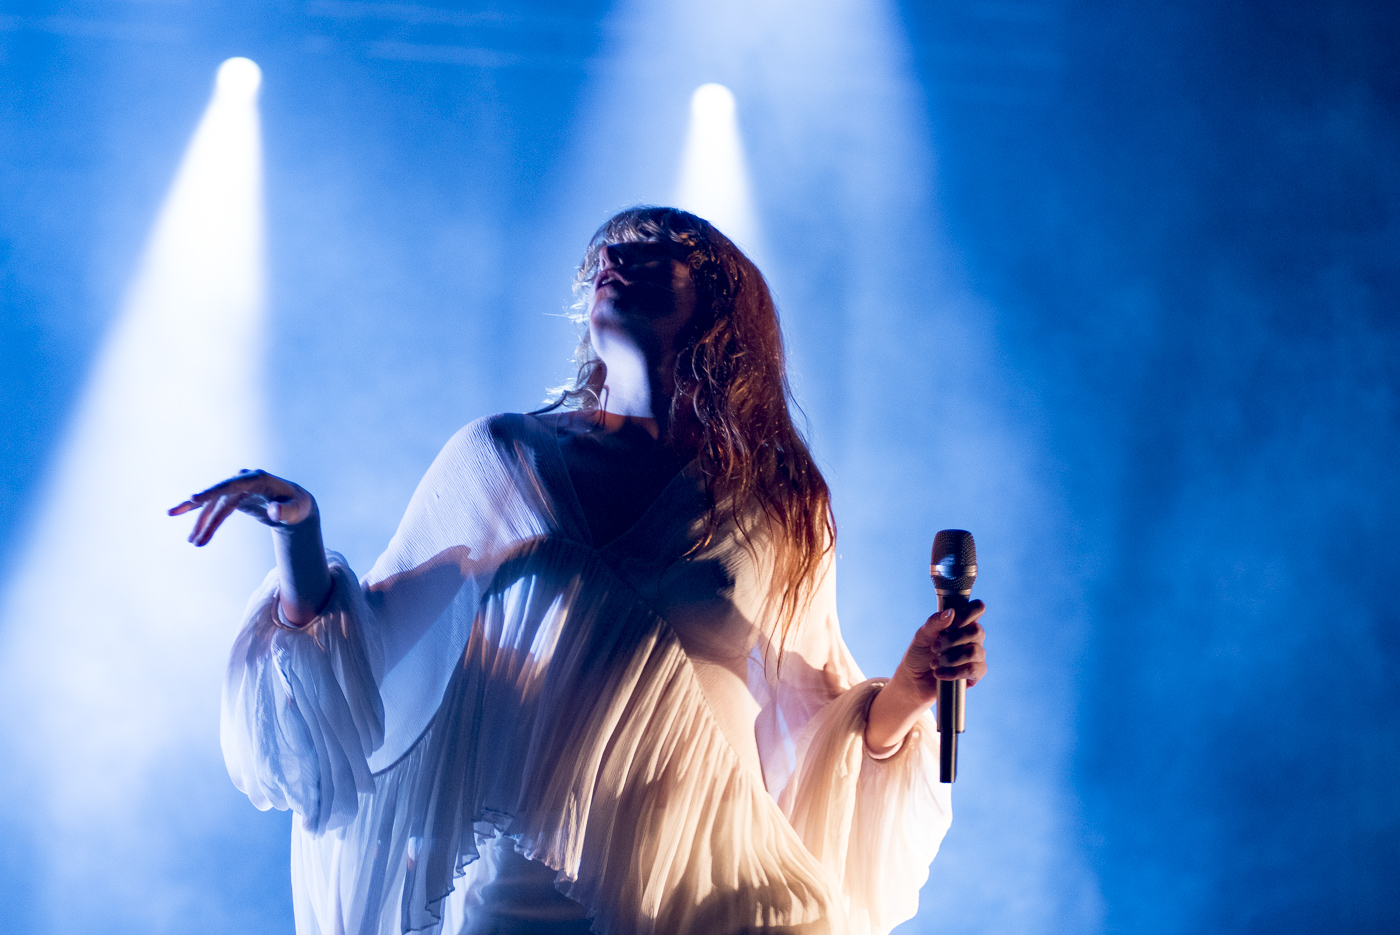 Florence_SITG15SAT_StephenBooth_112